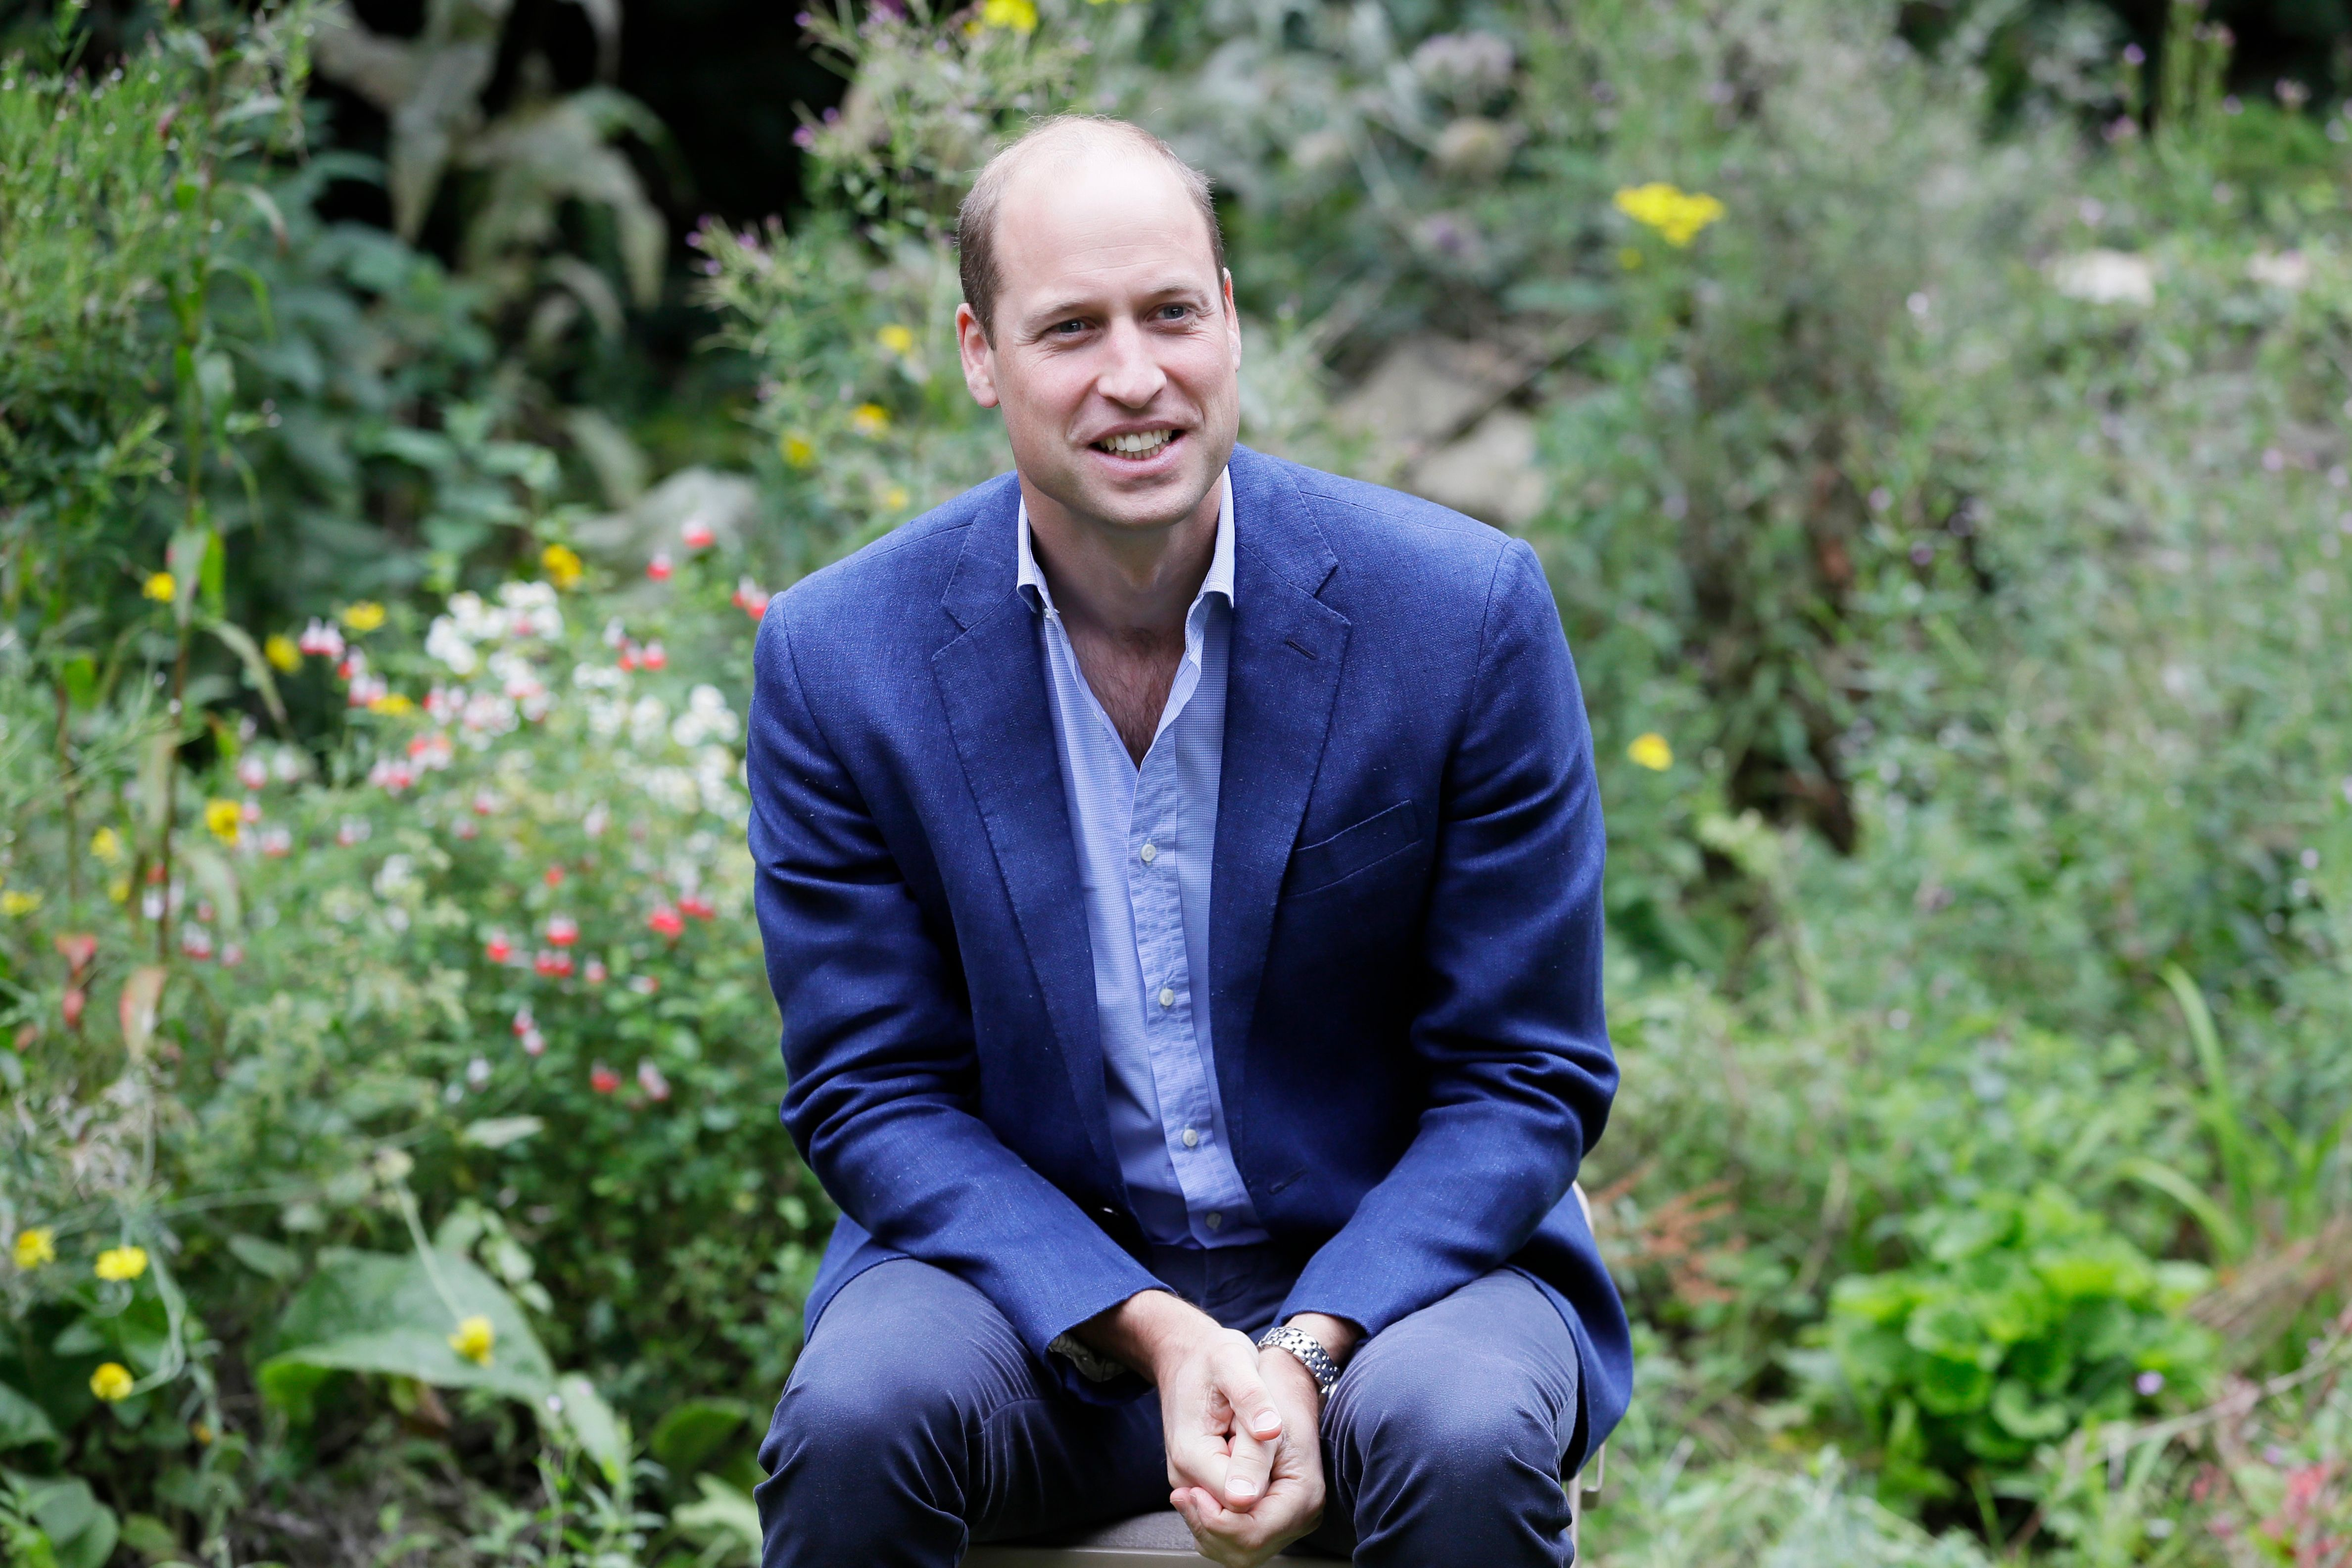 Prince William during  a visit to the Garden House part of the Light Project on July 16, 2020. | Getty Images